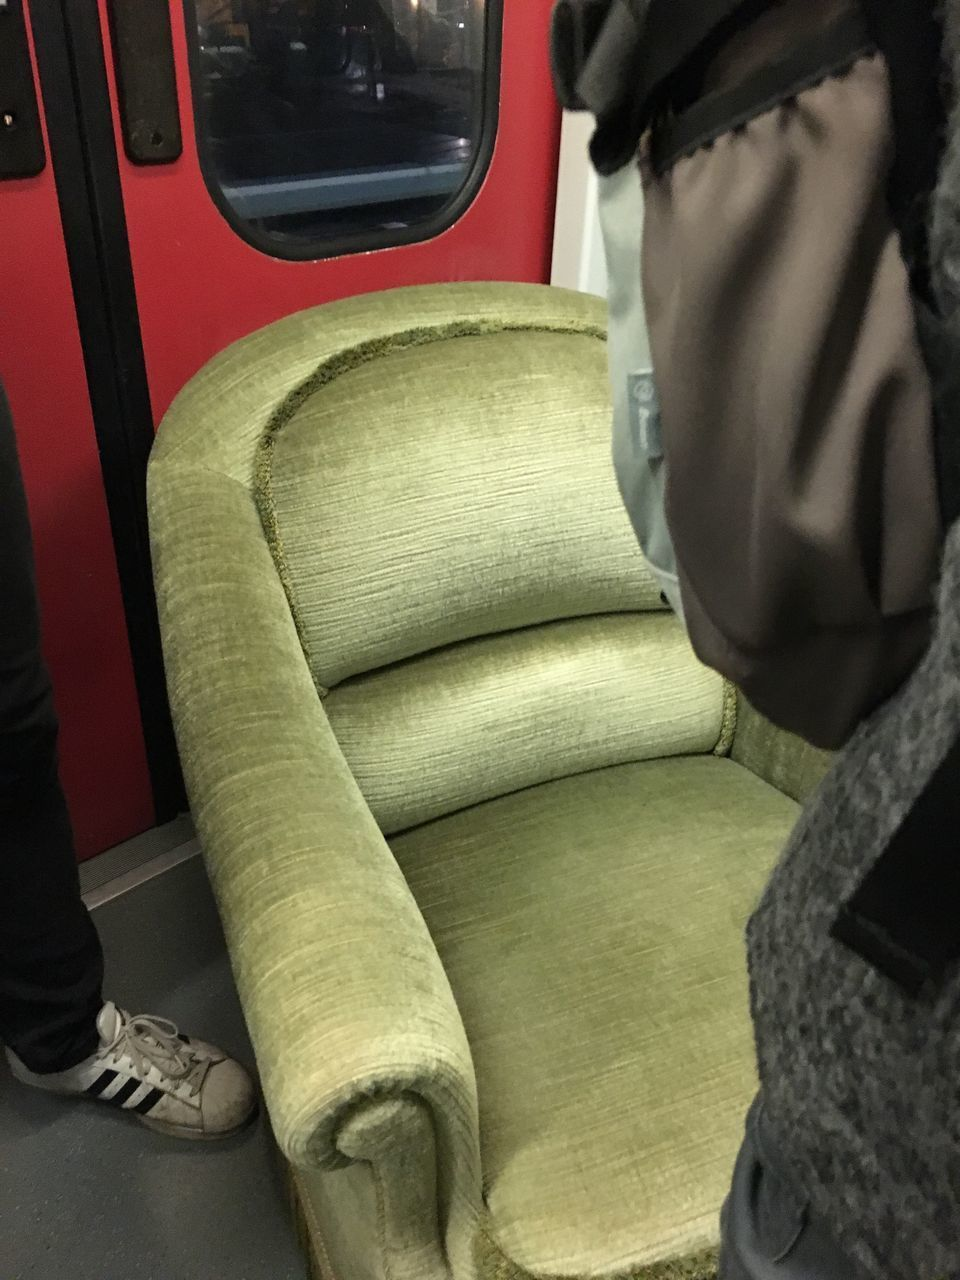 real people, mode of transport, public transportation, transportation, land vehicle, sitting, low section, day, vehicle seat, one person, men, indoors